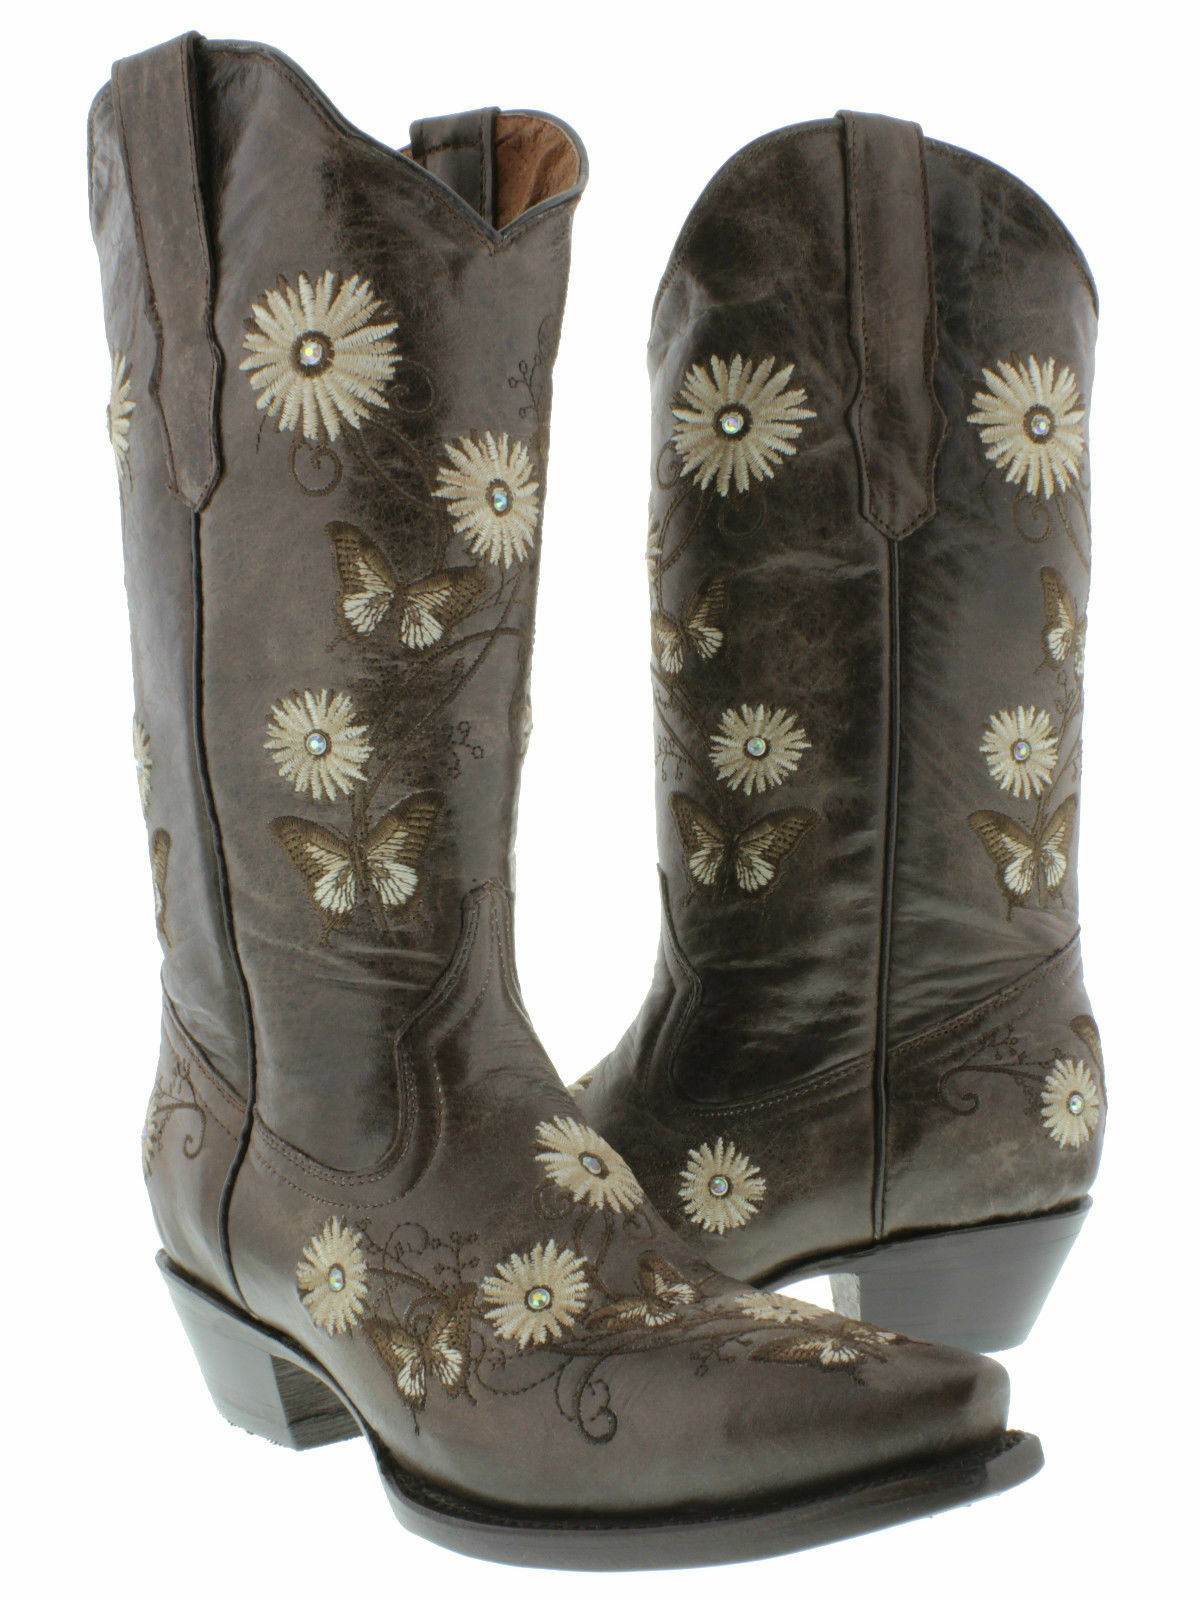 Donna Brown 2 Butterfly Flowers Western Cowboy Pelle Stivali Cowgirl